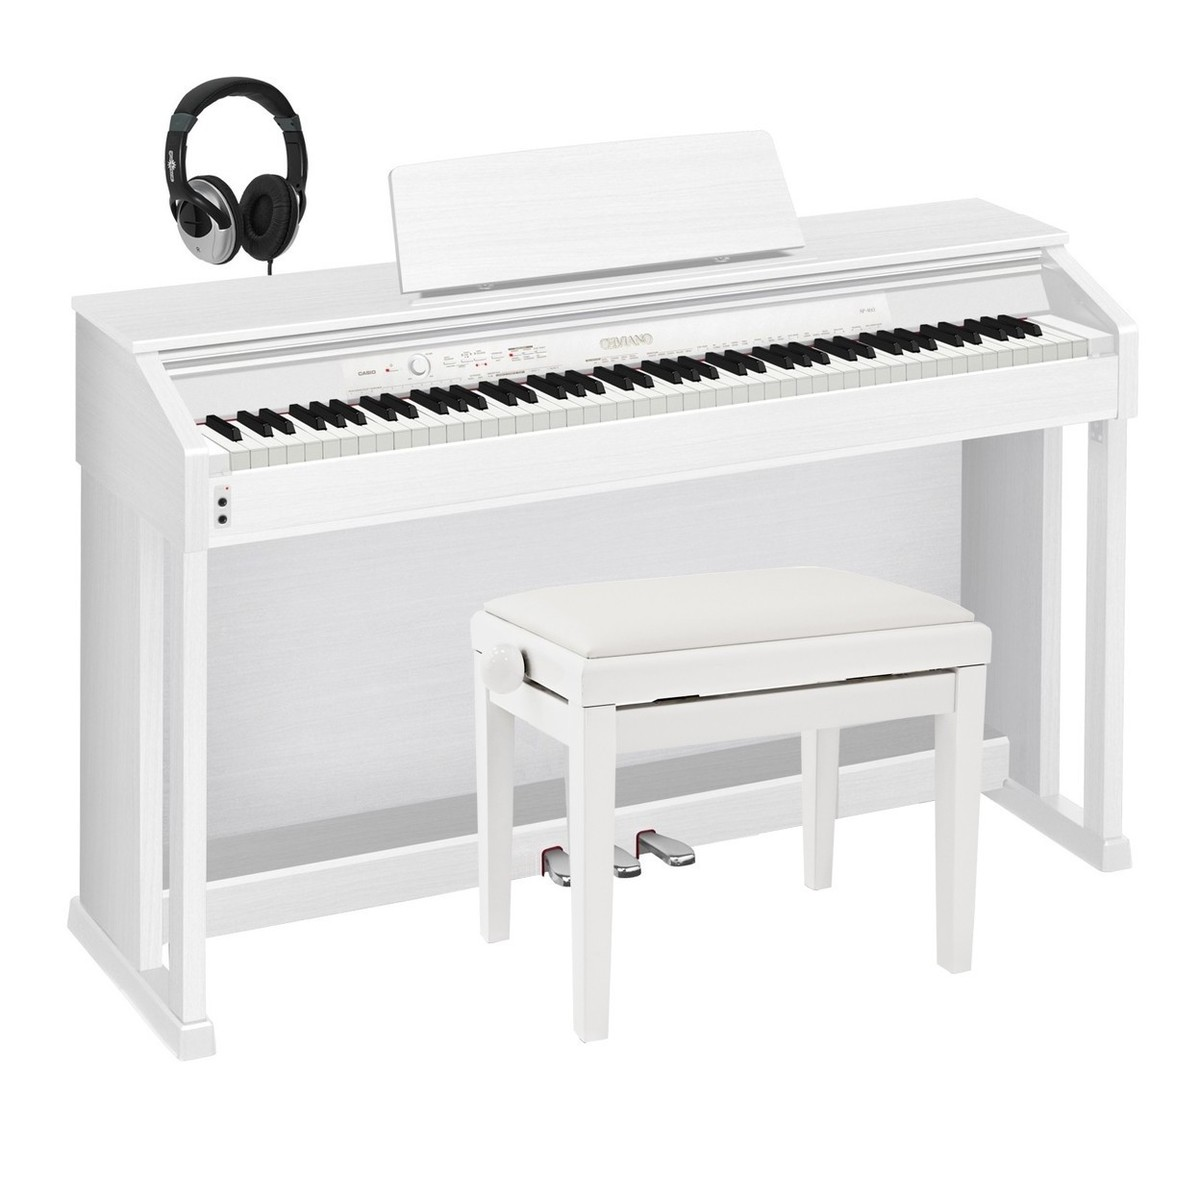 Casio Celviano AP-460 Piano Pack. Loading zoom  sc 1 st  Gear4music : casio piano stool - islam-shia.org